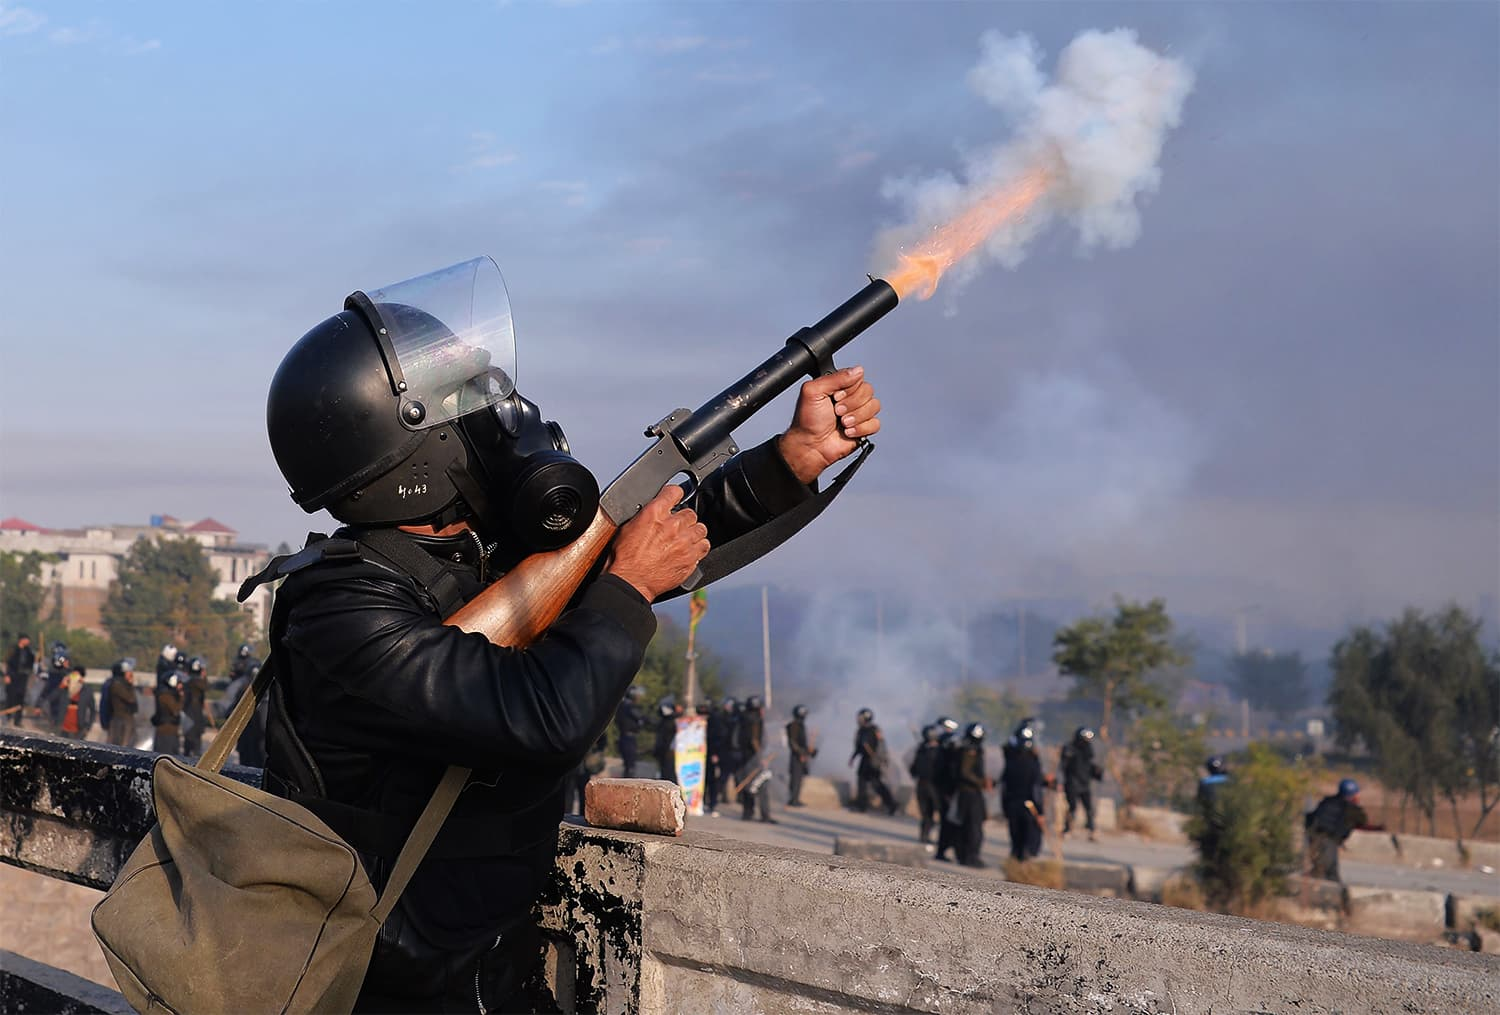 A policeman fires at TLY protesters during clashes in Islamabad. ─ AFP